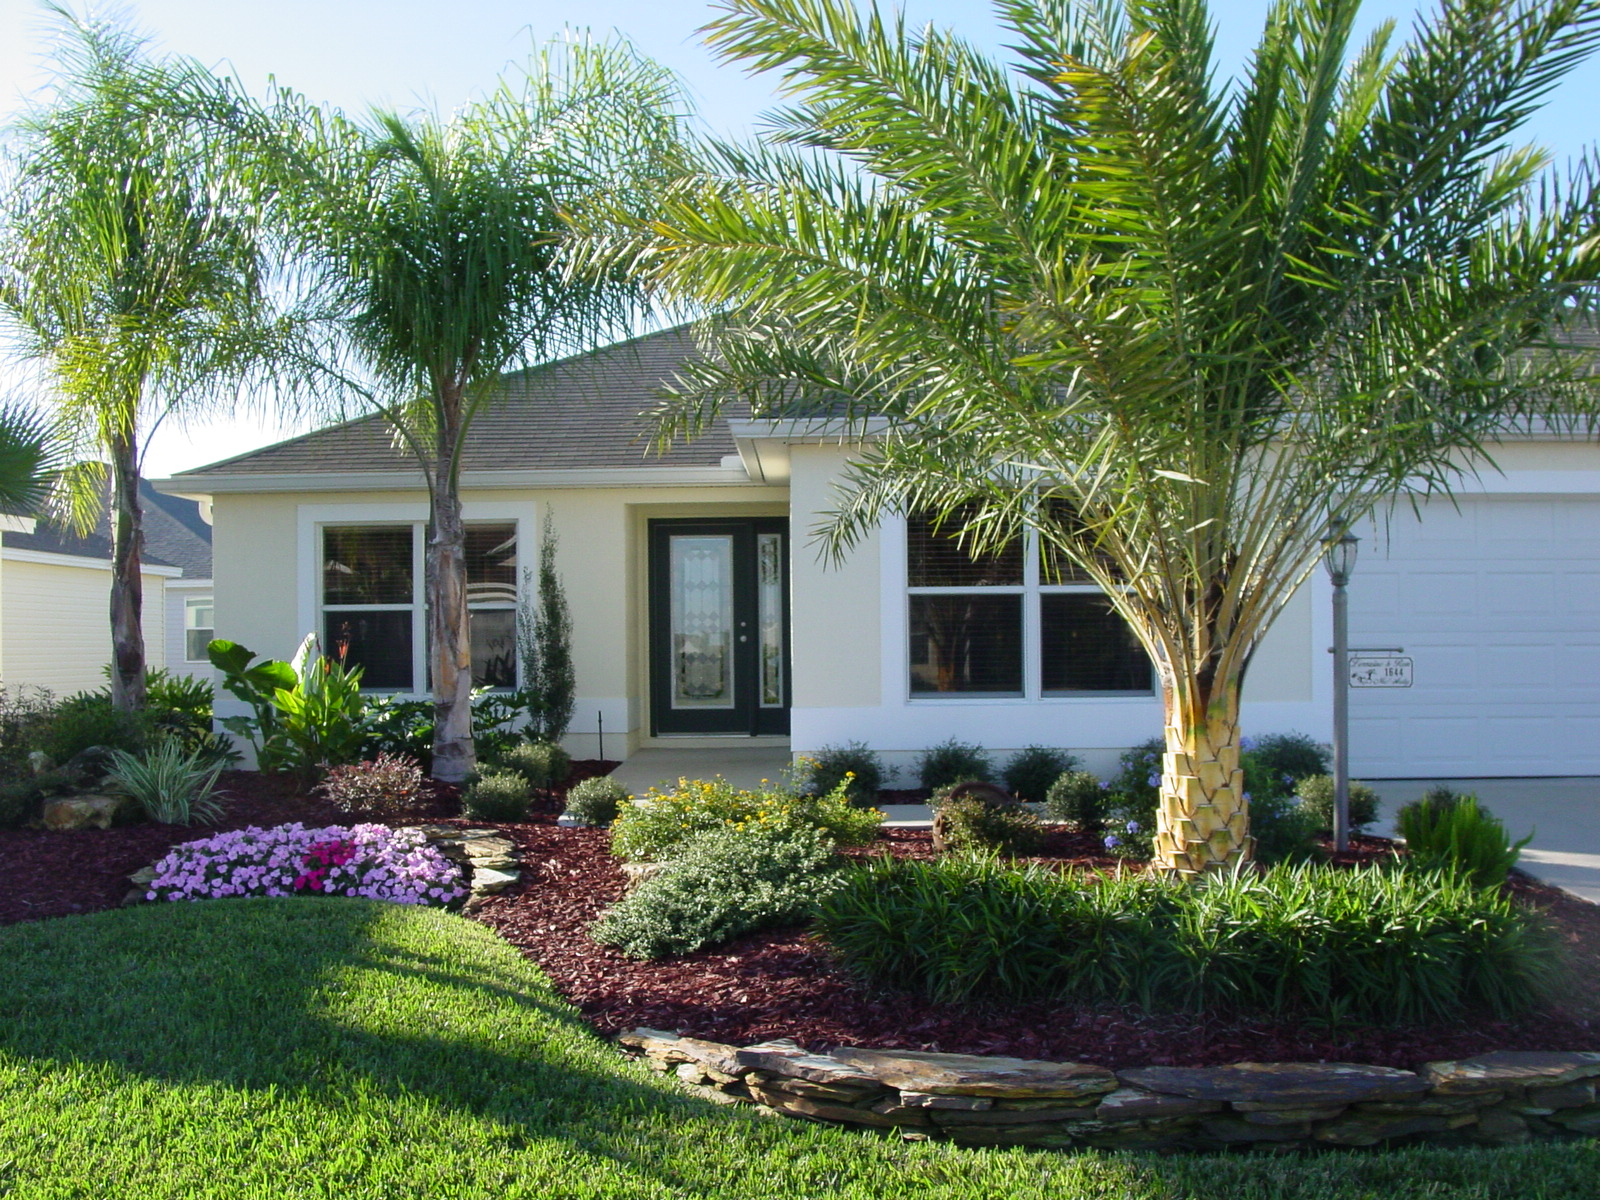 Florida garden landscape ideas photograph rons landscaping for Garden and landscaping ideas